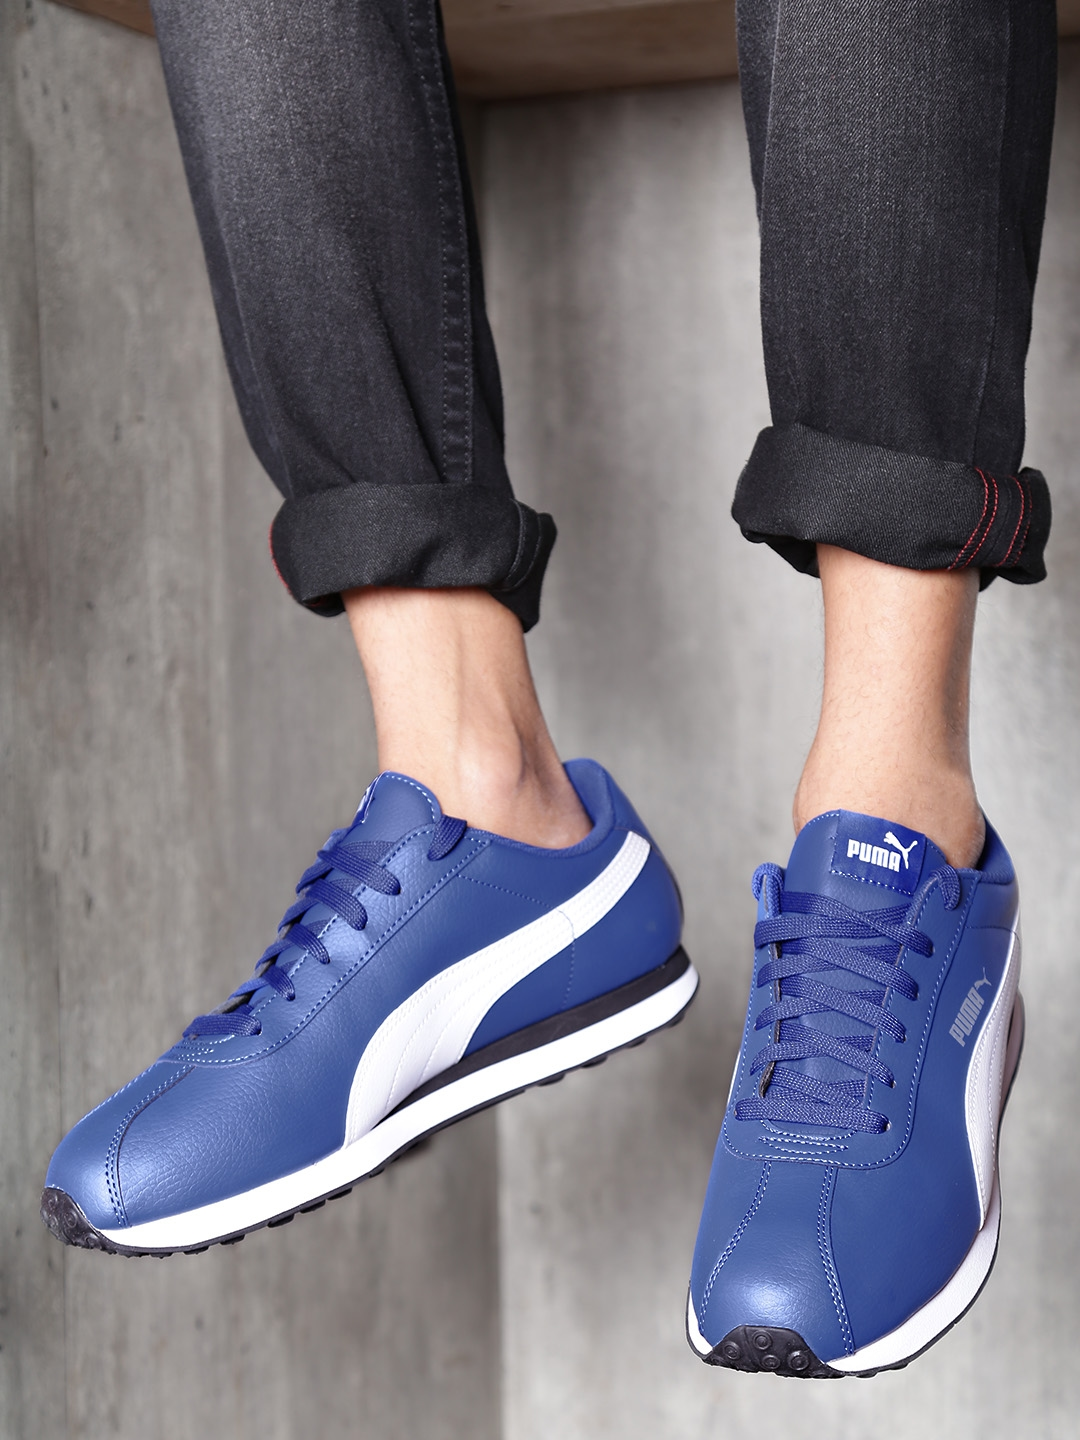 b179dcd32ab Buy Puma Men Blue   White Turin Sneakers - Casual Shoes for Men ...